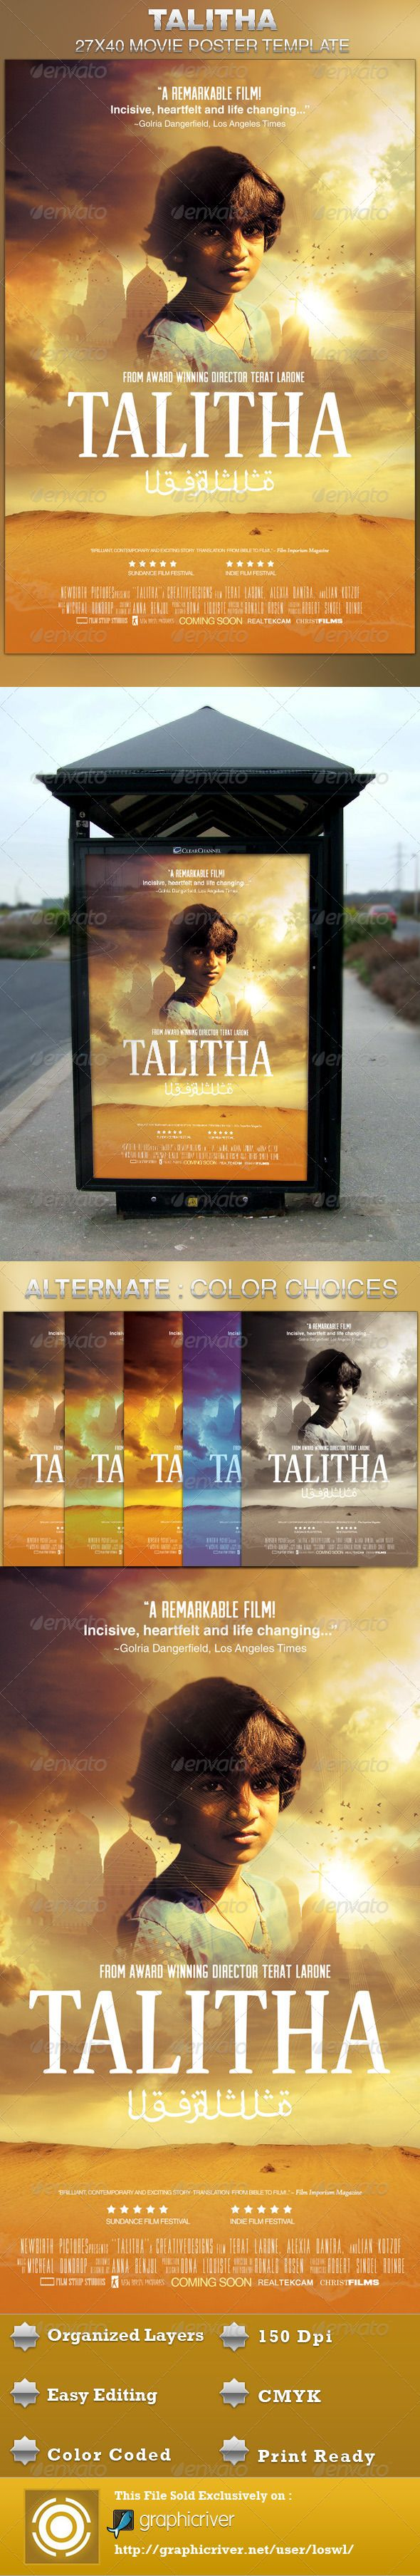 Talitha Movie Poster Template — Photoshop PSD #study #healing • Available here → https://graphicriver.net/item/talitha-movie-poster-template/4533954?ref=pxcr